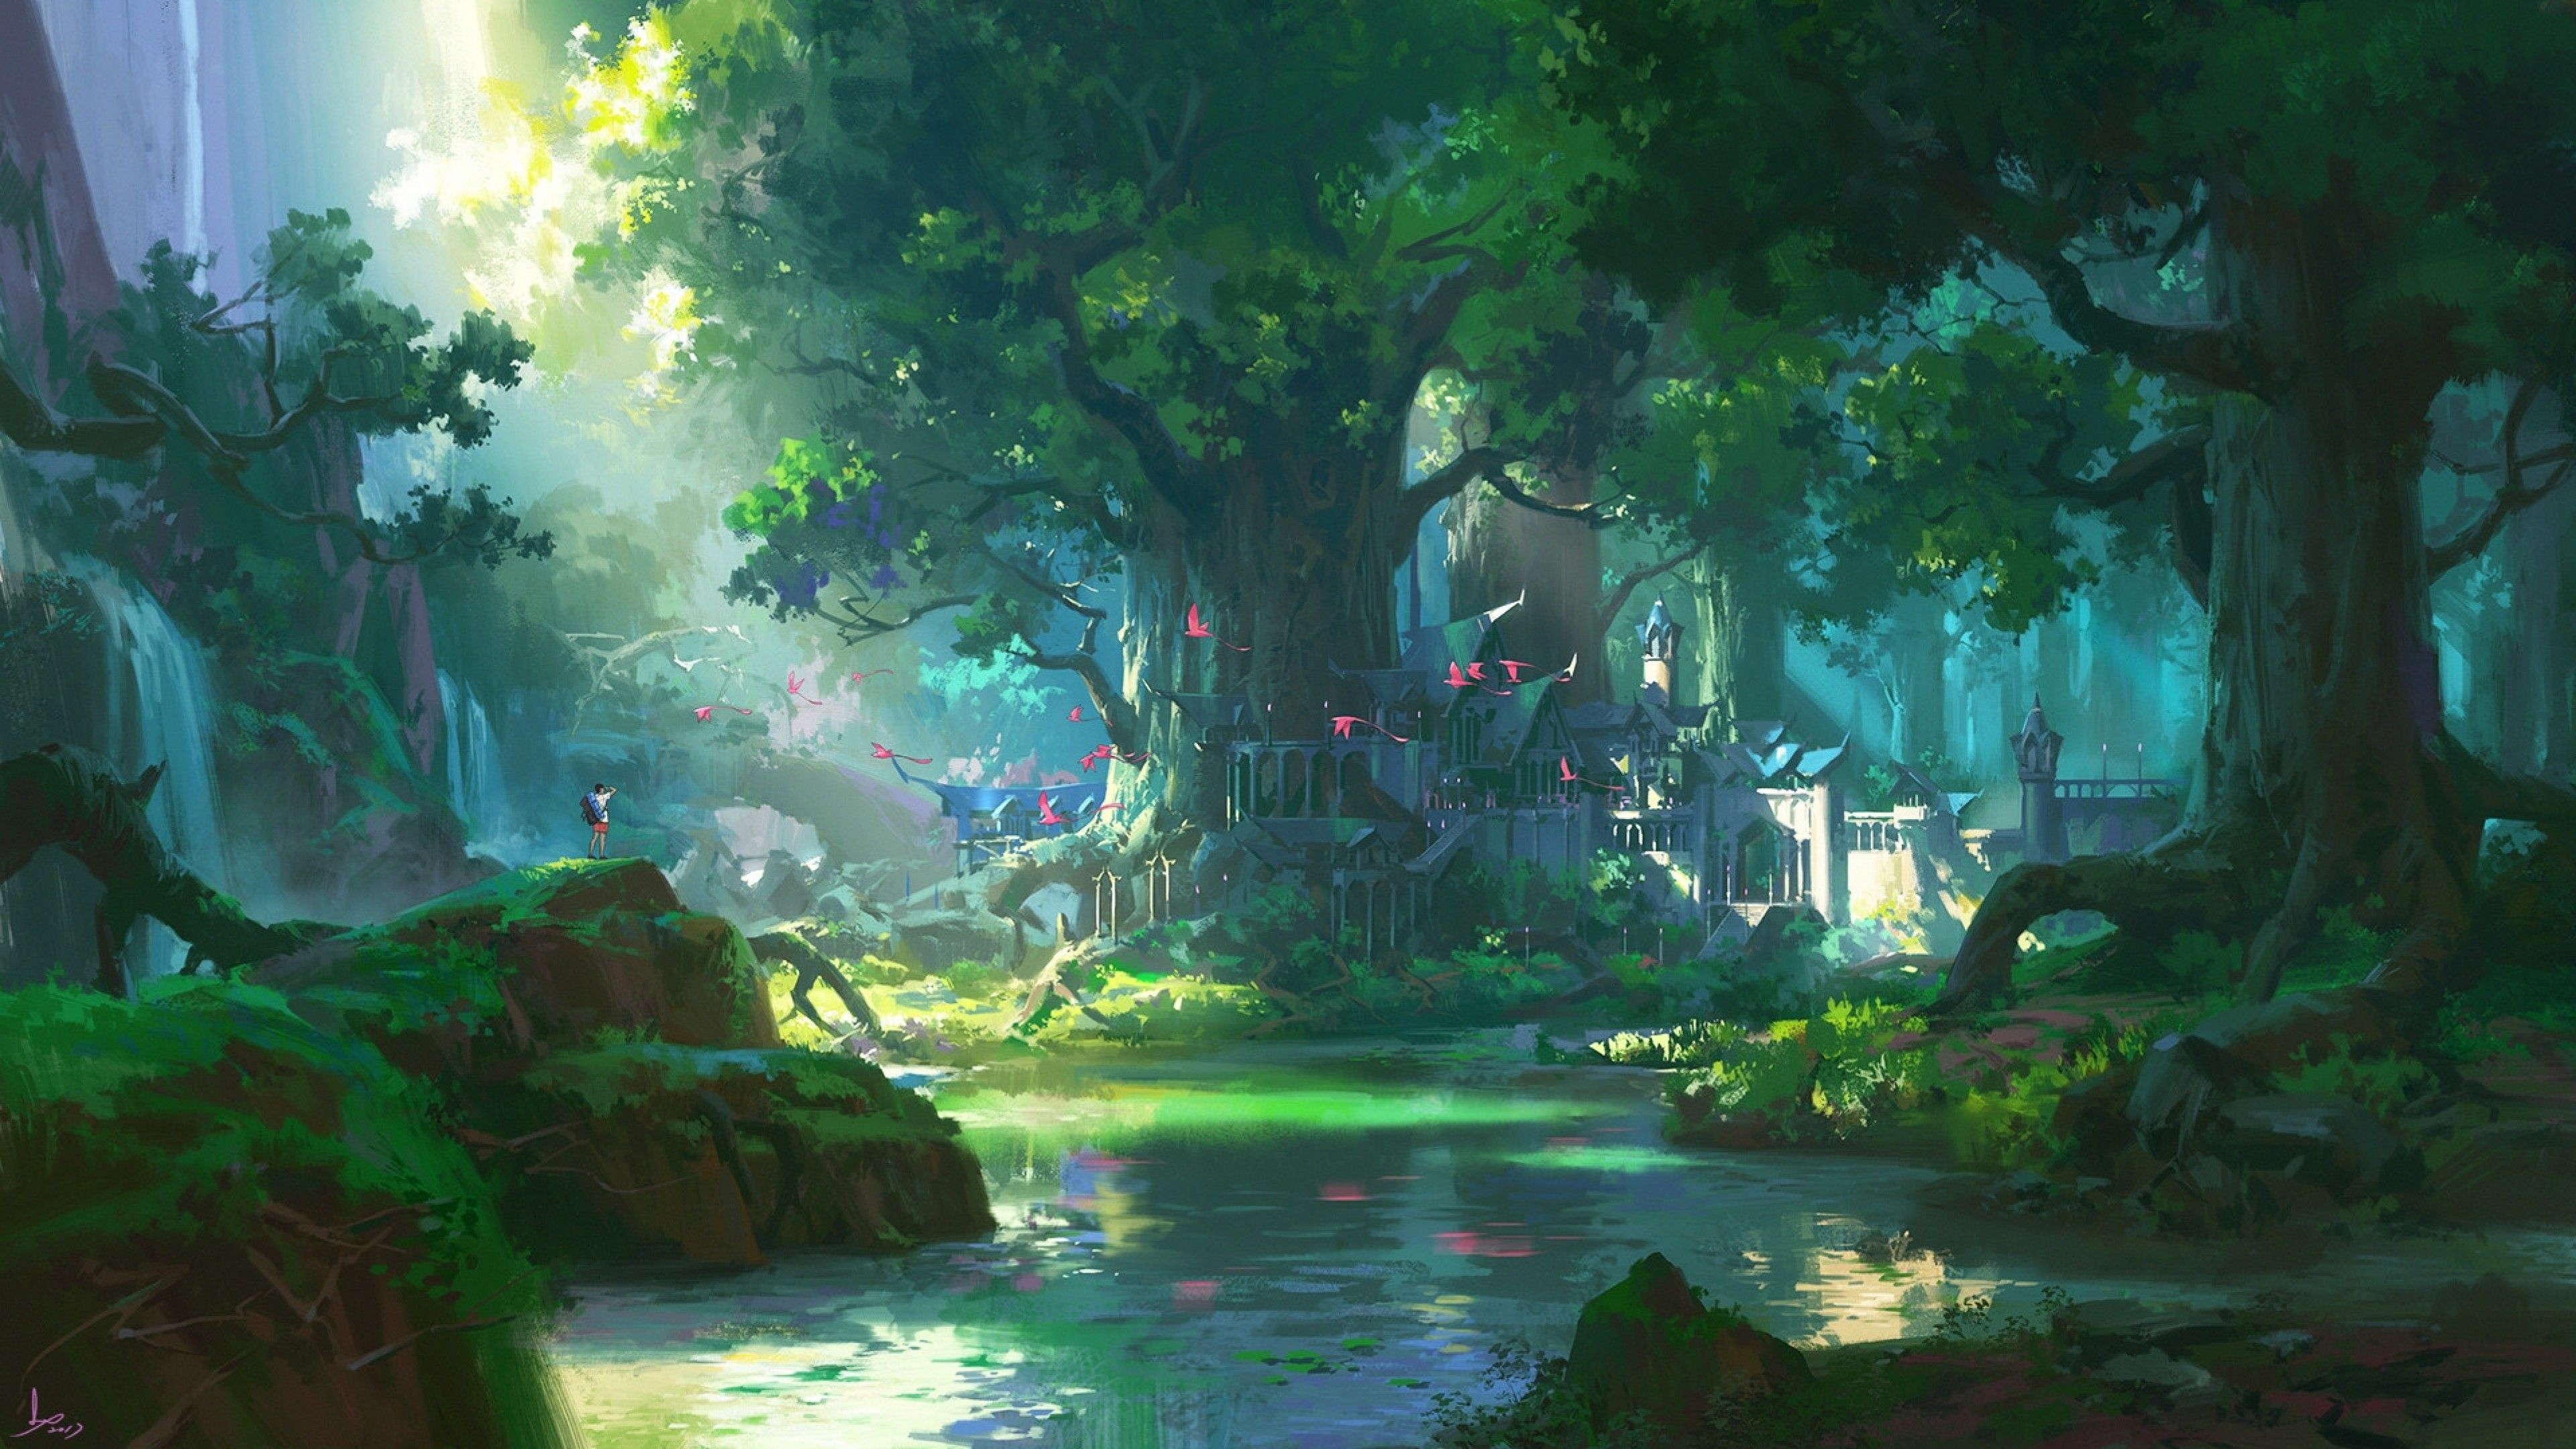 Anime Forest Scenery Wallpaper Music Indieartist